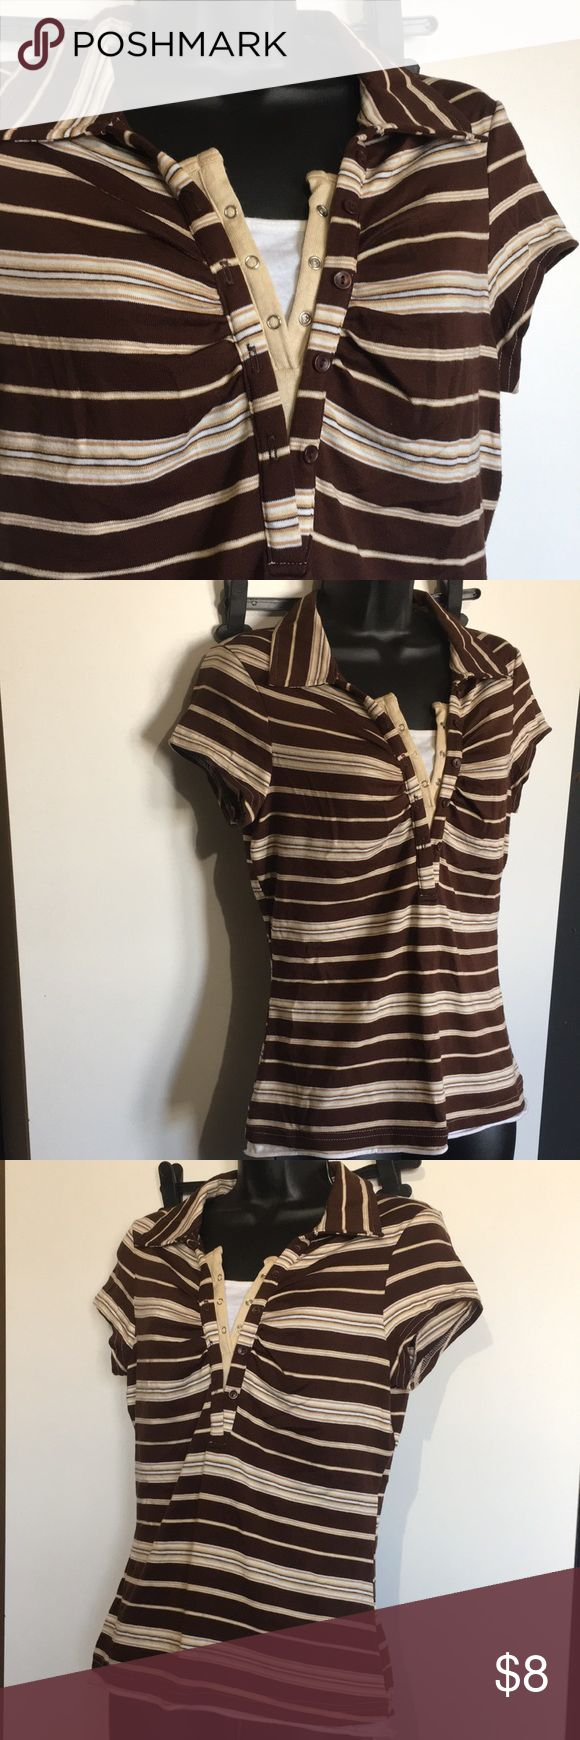 """Anxiety Woman's Top Anxiety Woman's Large,cream,white,& brown striped,collar style,short sleeve,v-cut, 22 1/2"""" full length,New Condition. Anxiety Tops"""